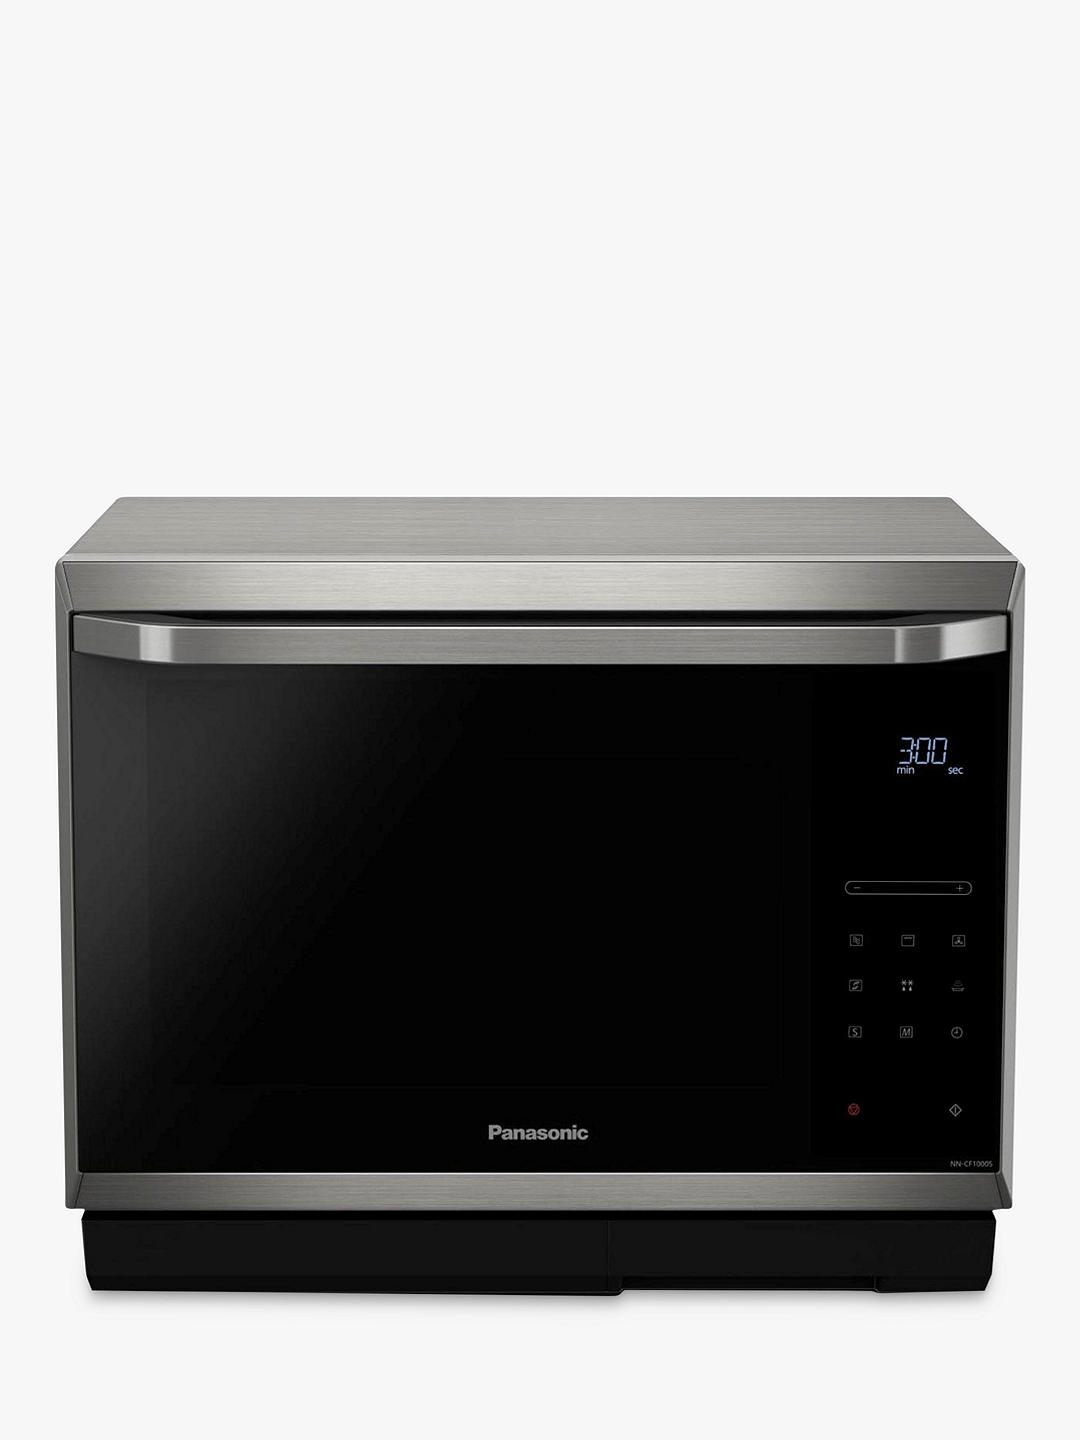 Panasonic Nn Cf873sbpq Combination Microwave Oven